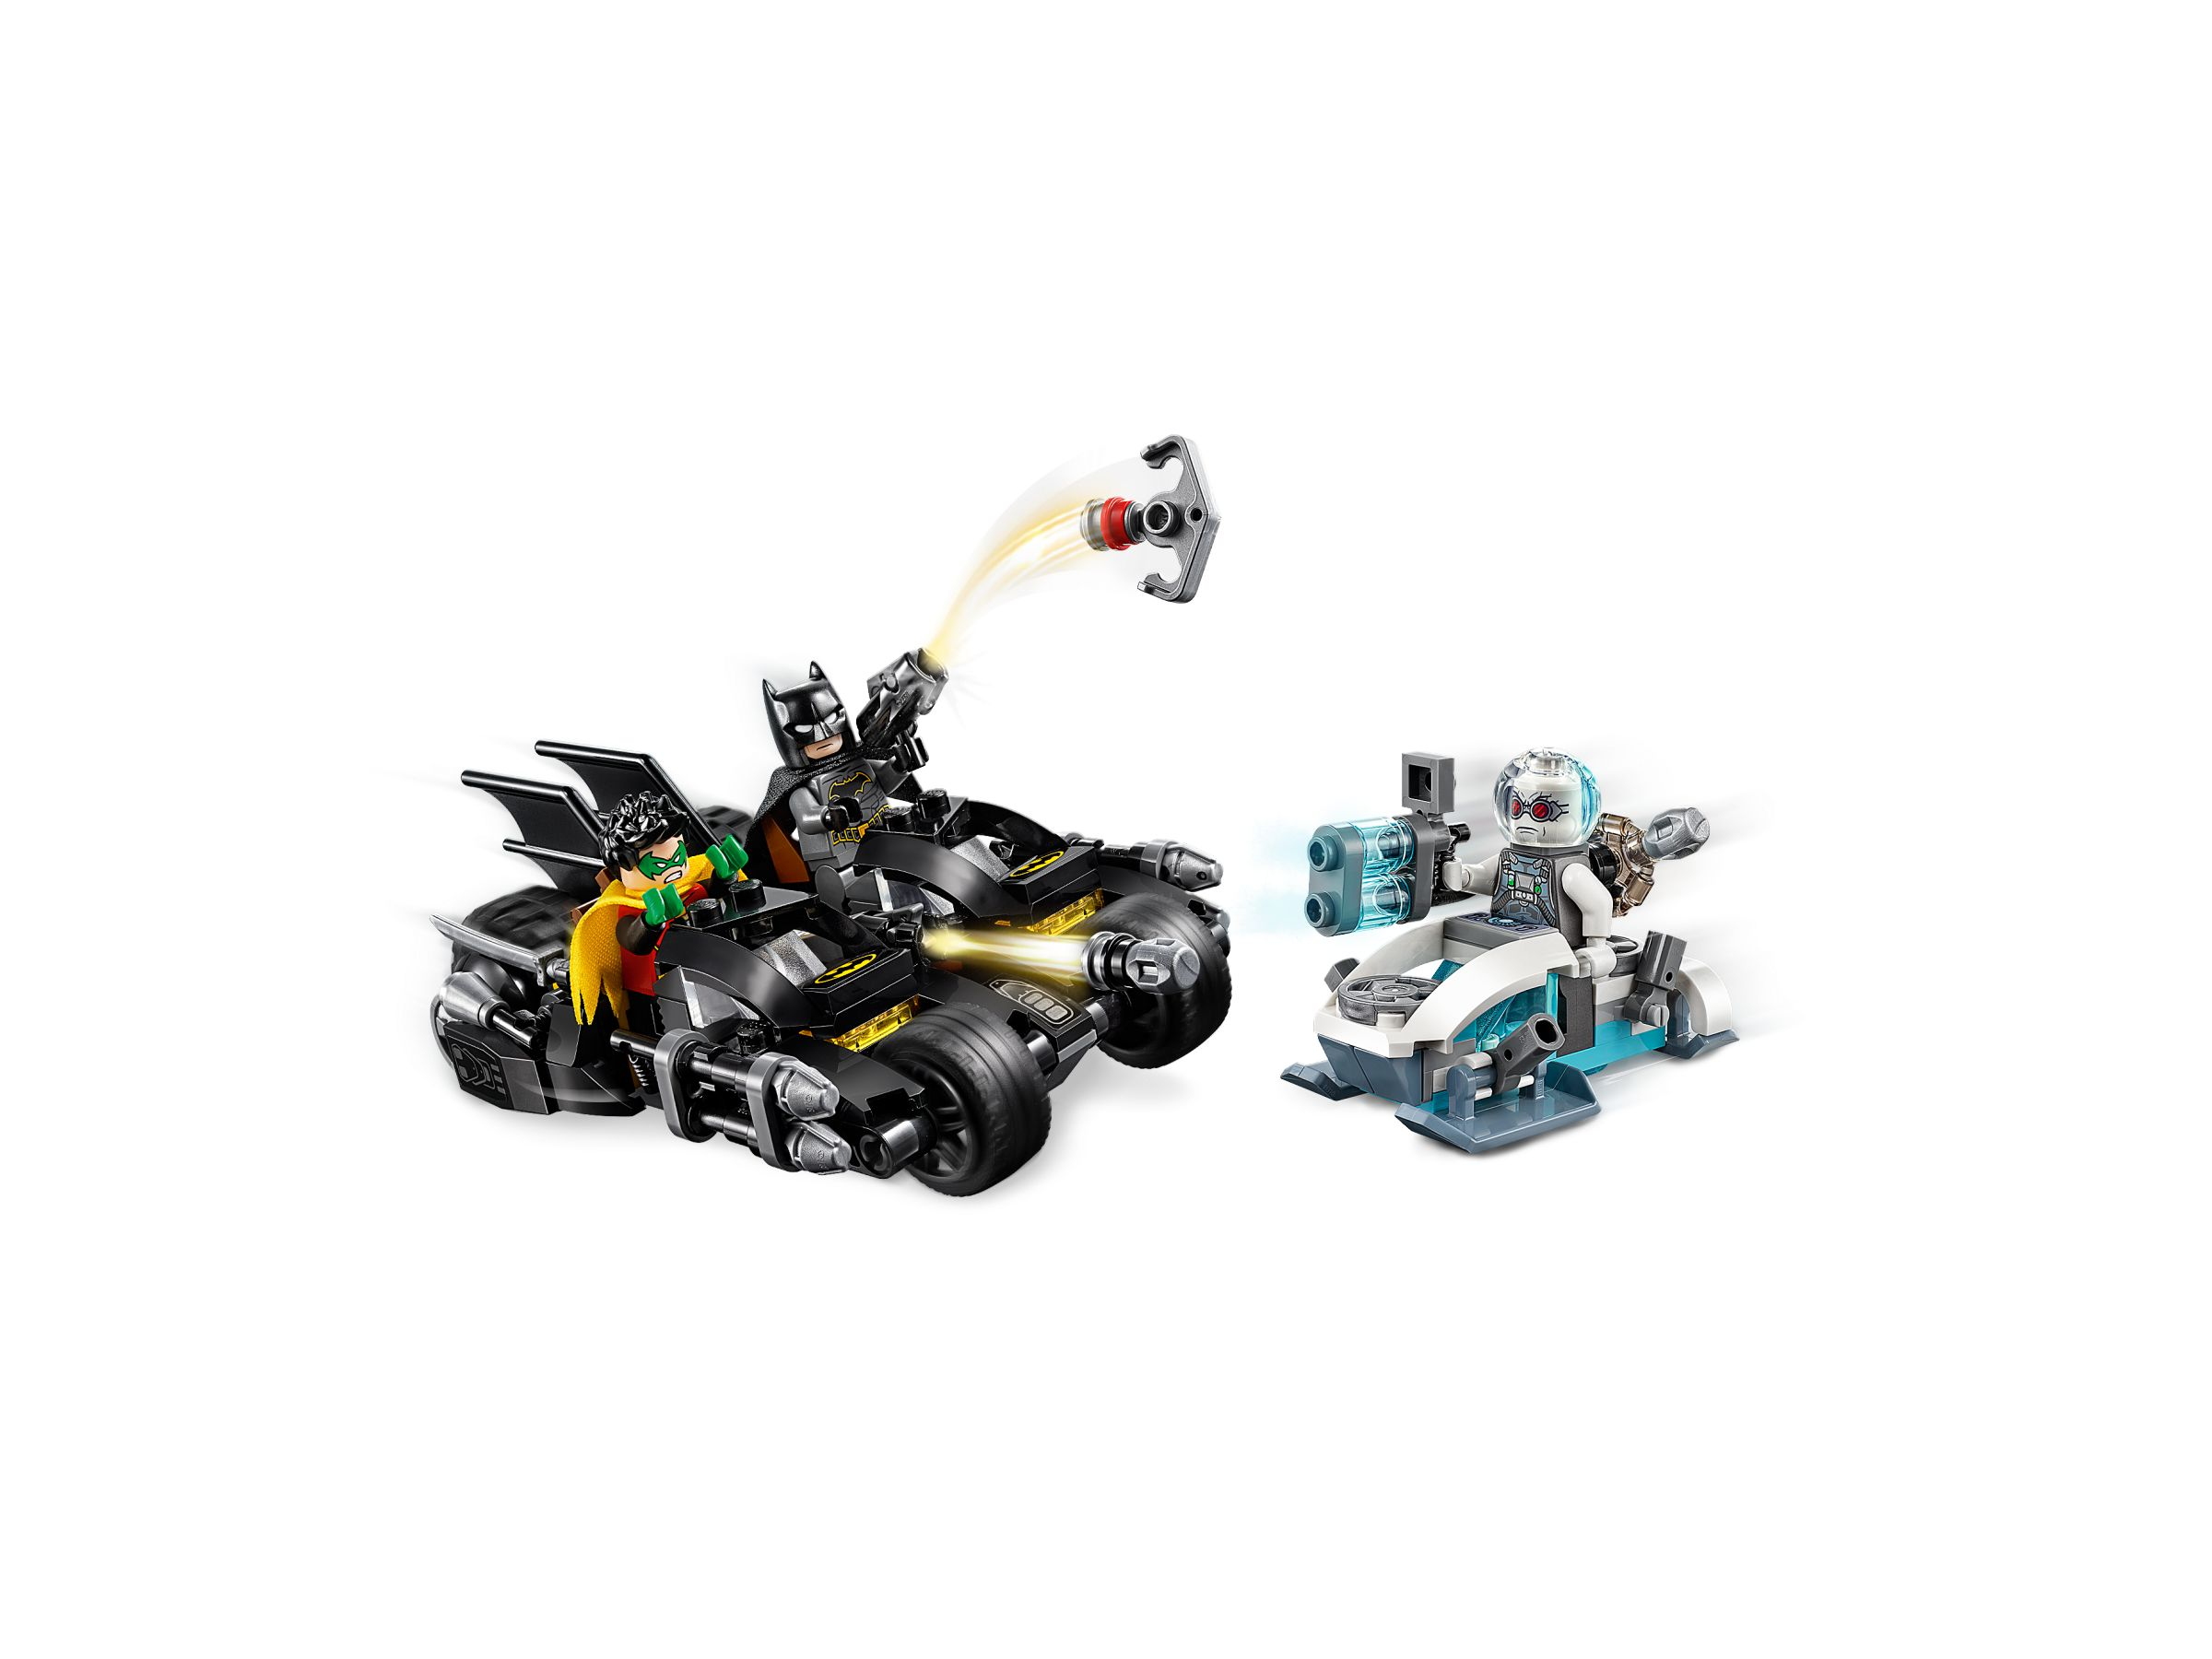 LEGO Super Heroes 76118 Batcycle-Duell mit Mr. Freeze™ LEGO_76118_alt2.jpg